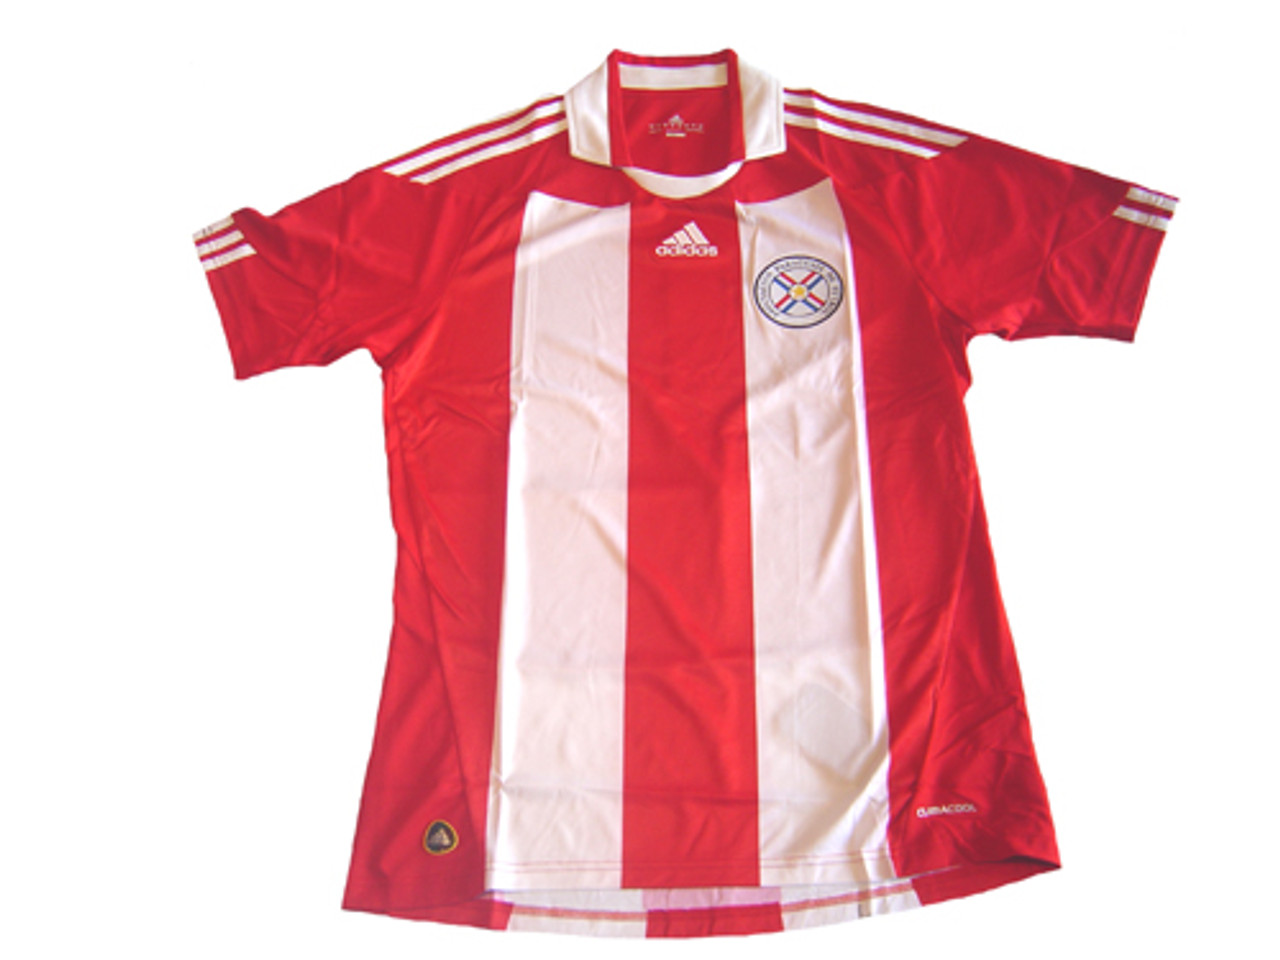 ADIDAS PARAGUAY 2010 HOME JERSEY WHITE/RED